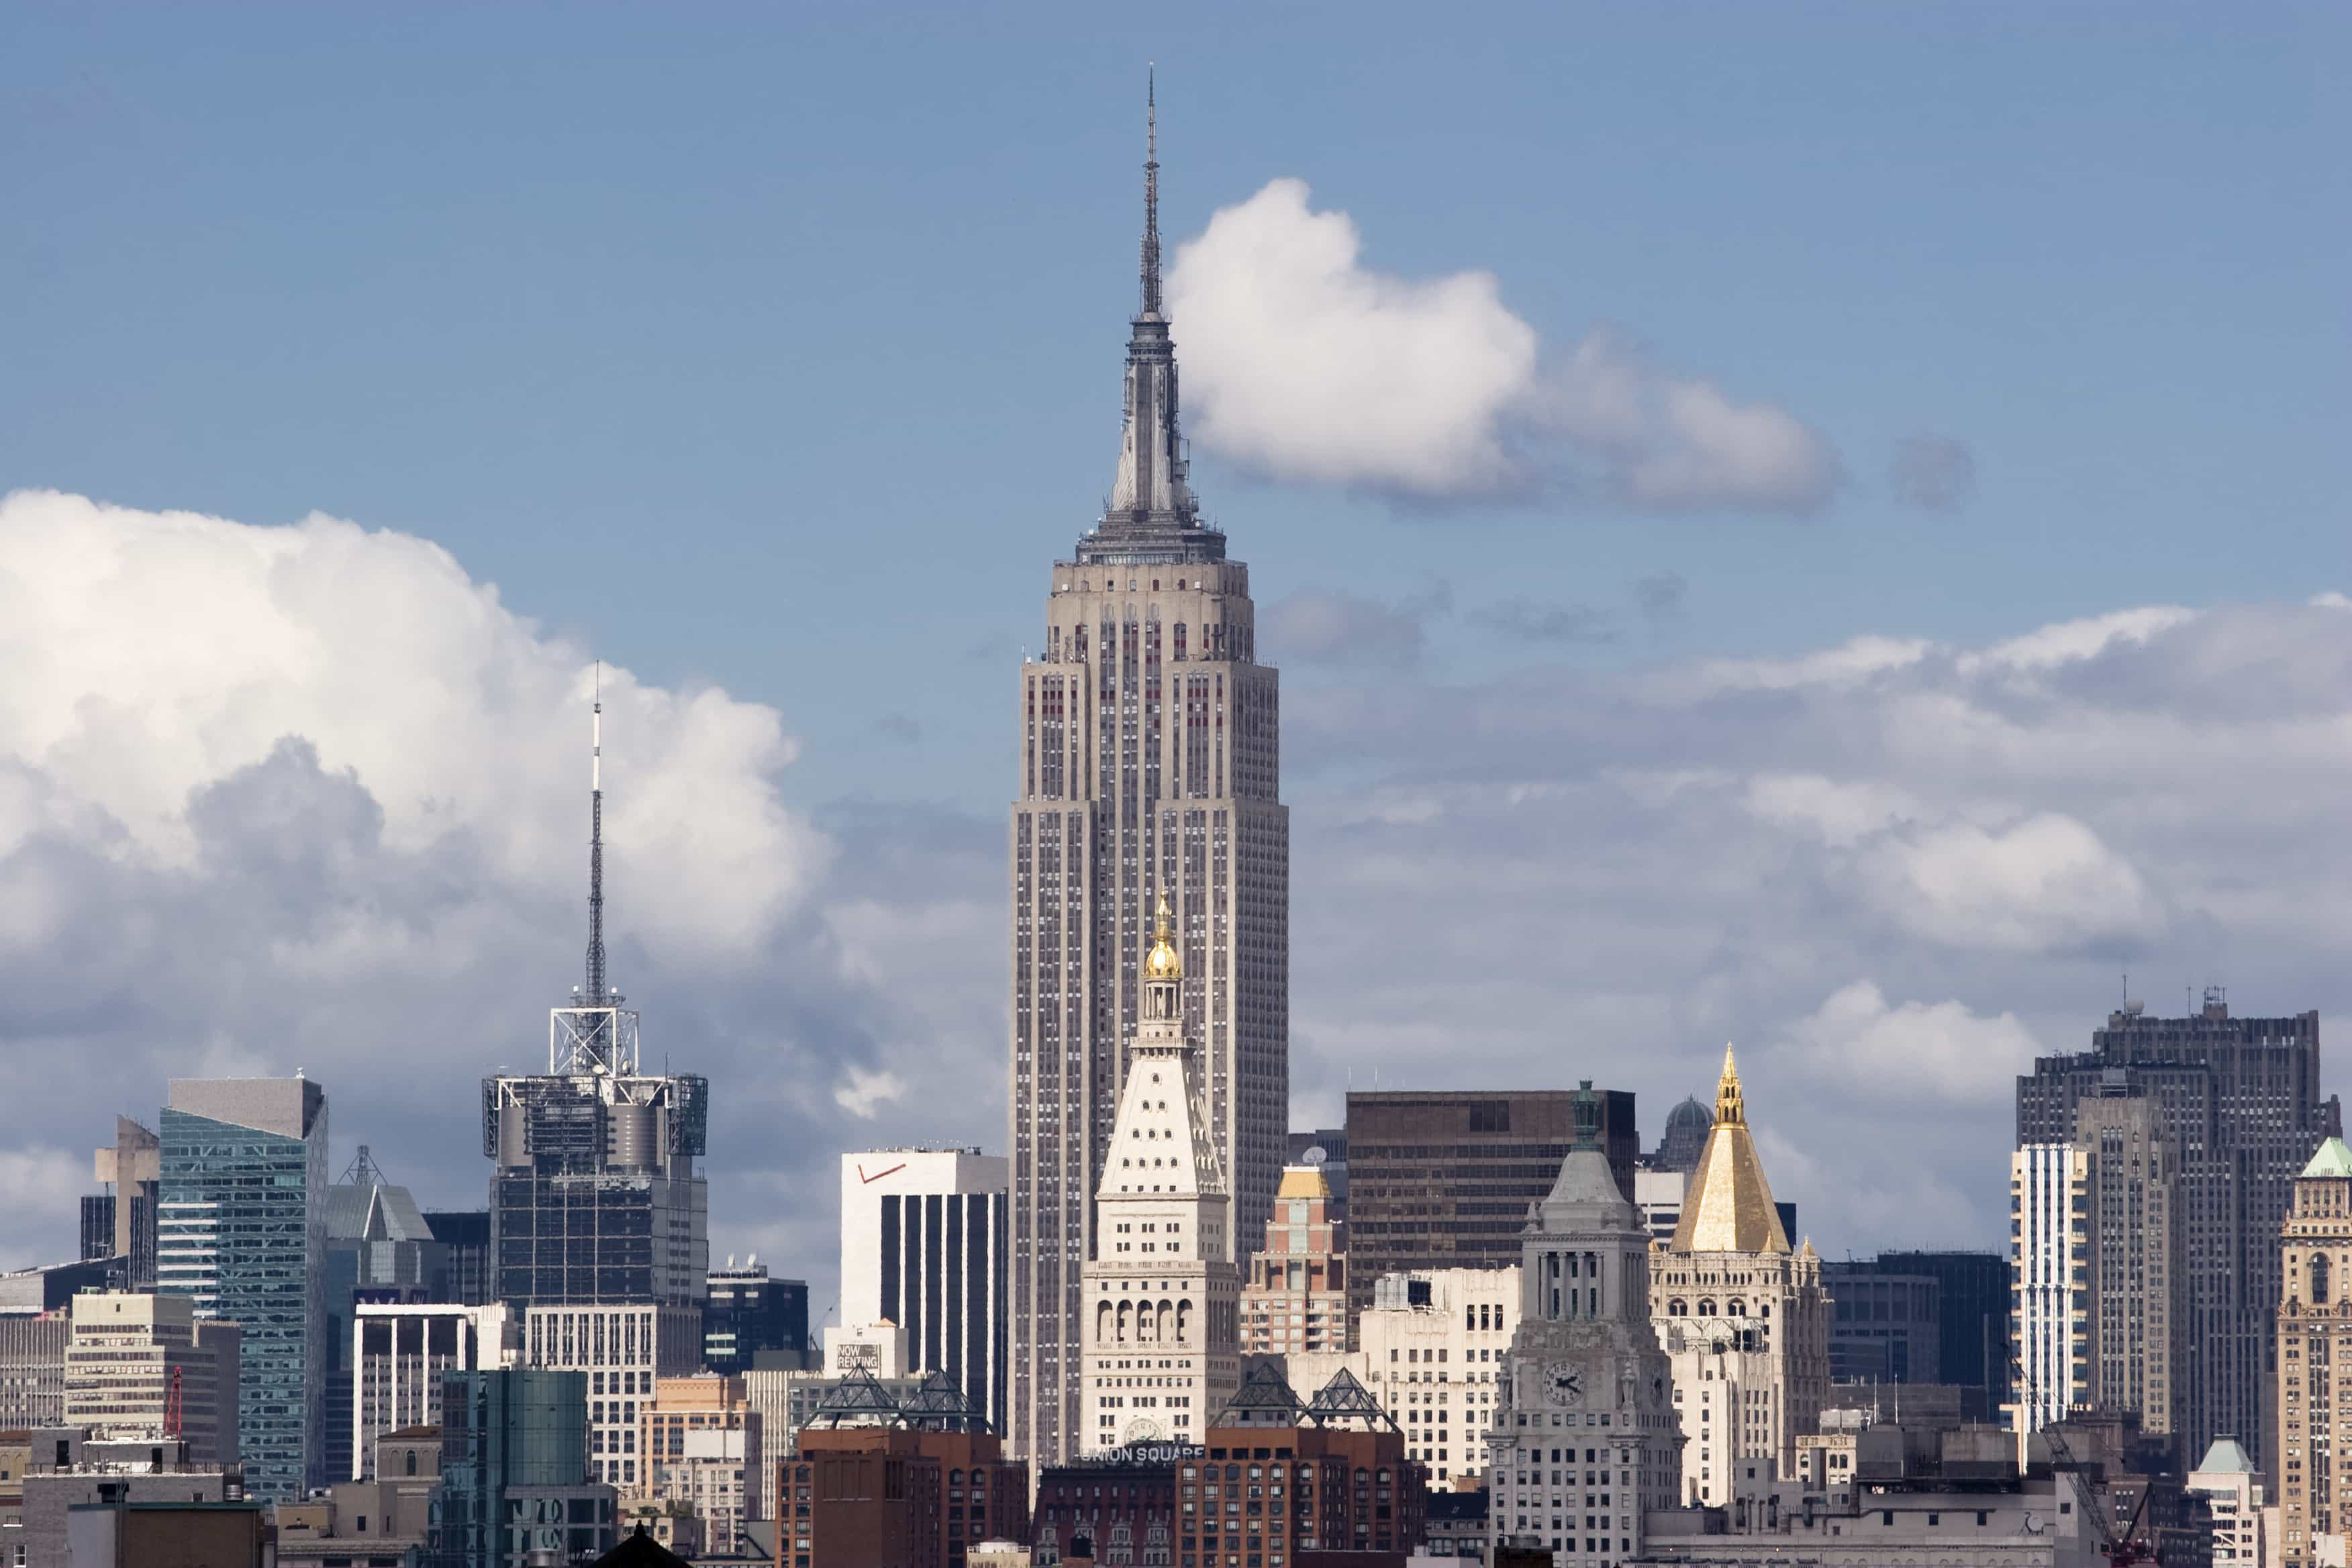 Empire State Building iStock 000003672904 Large - THE WORLD'S MOST INSPIRING FAMOUS BUILDINGS (PART ONE)